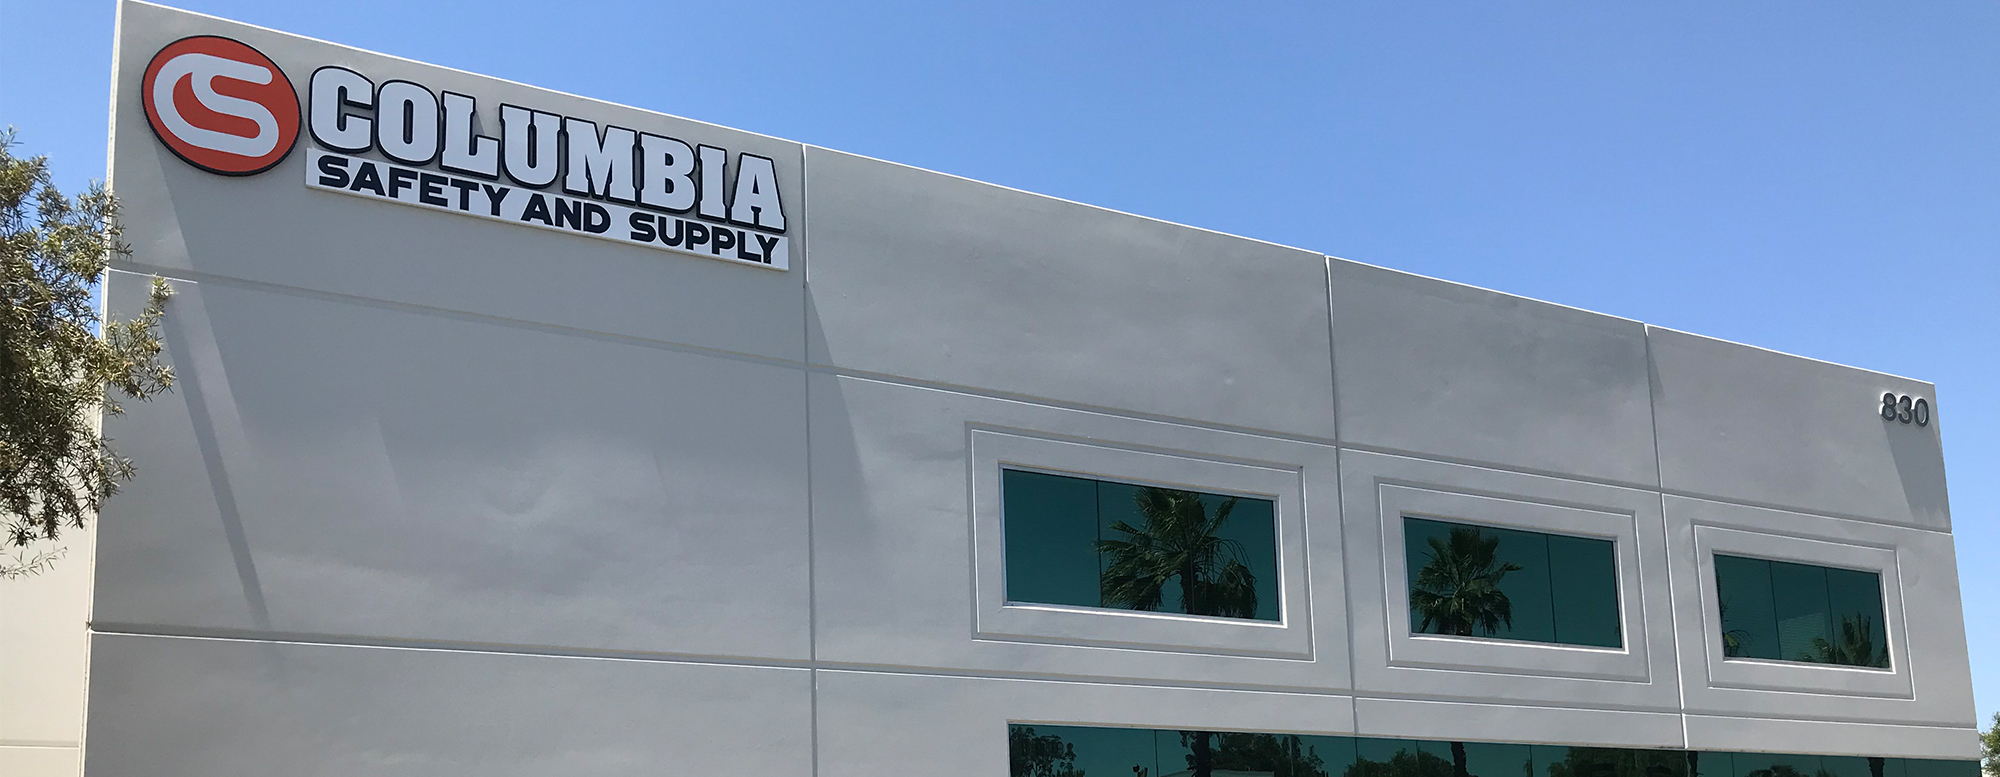 Columbia Safety and Supply's Storefront & Distribution Center located in Corona (Los Angeles), CA